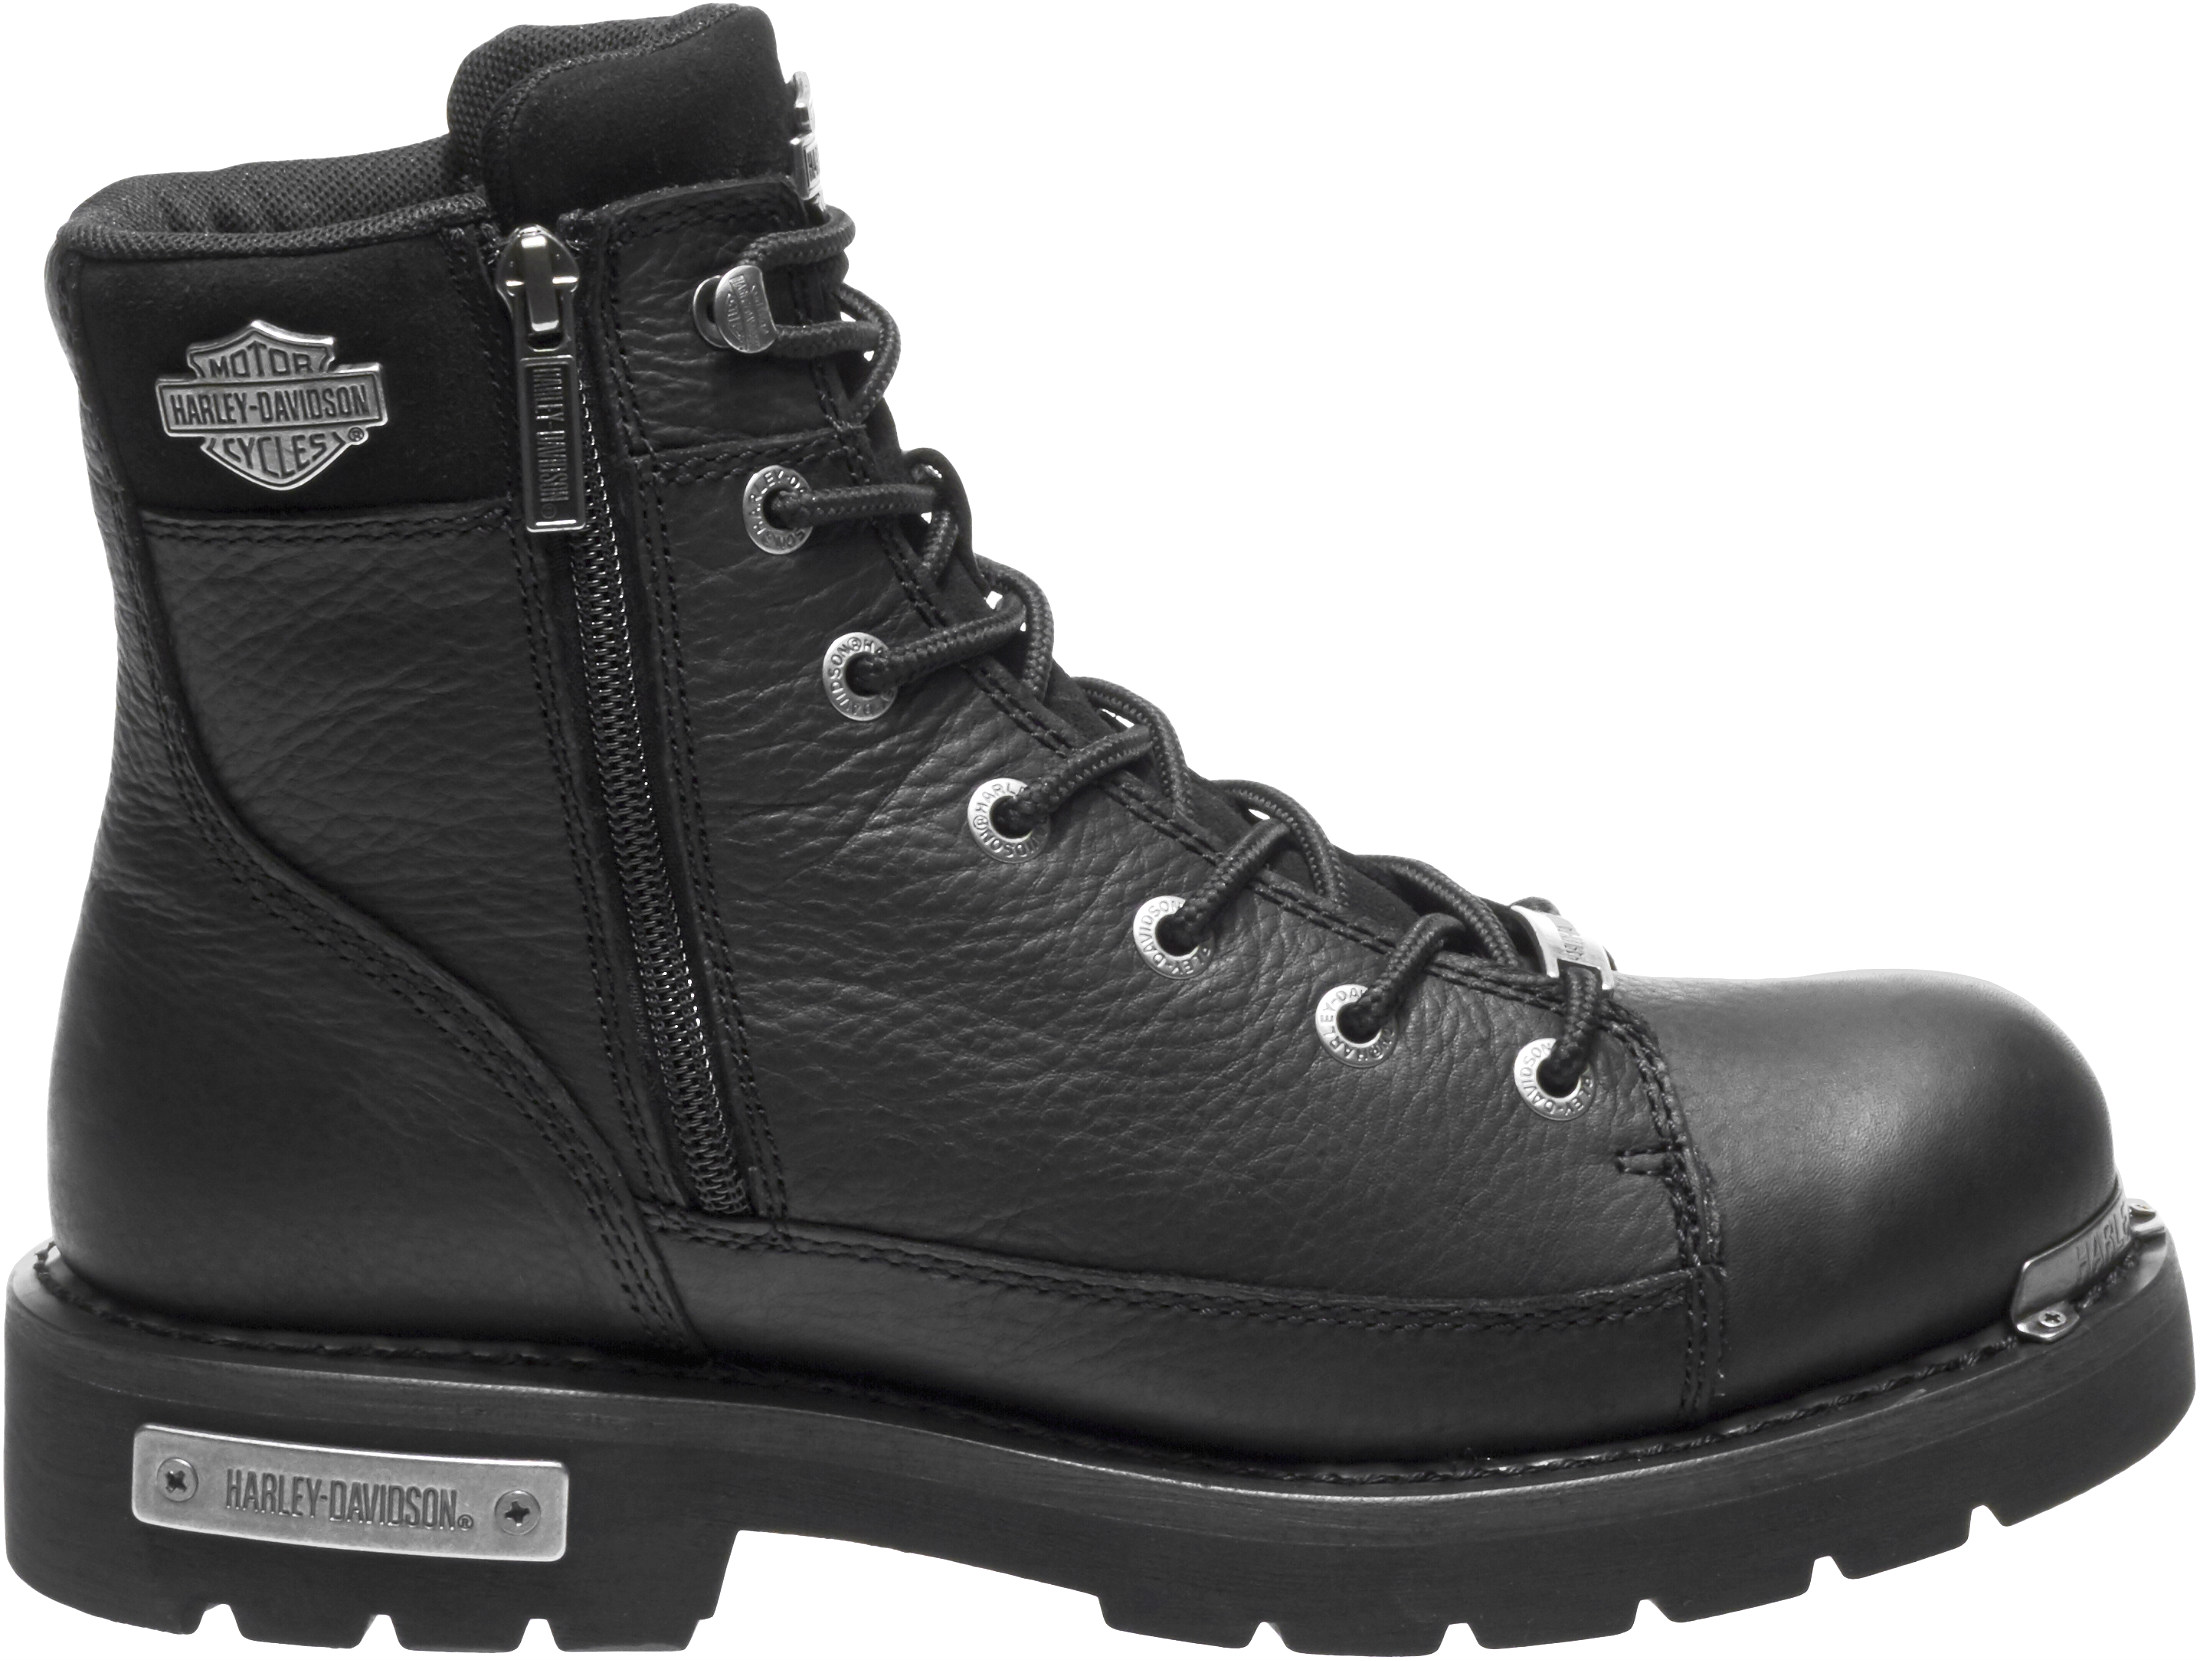 HARLEY-DAVIDSON® FOOTWEAR Men's Chipman Motorcycle Riding Boots | Outside Locking Zipper